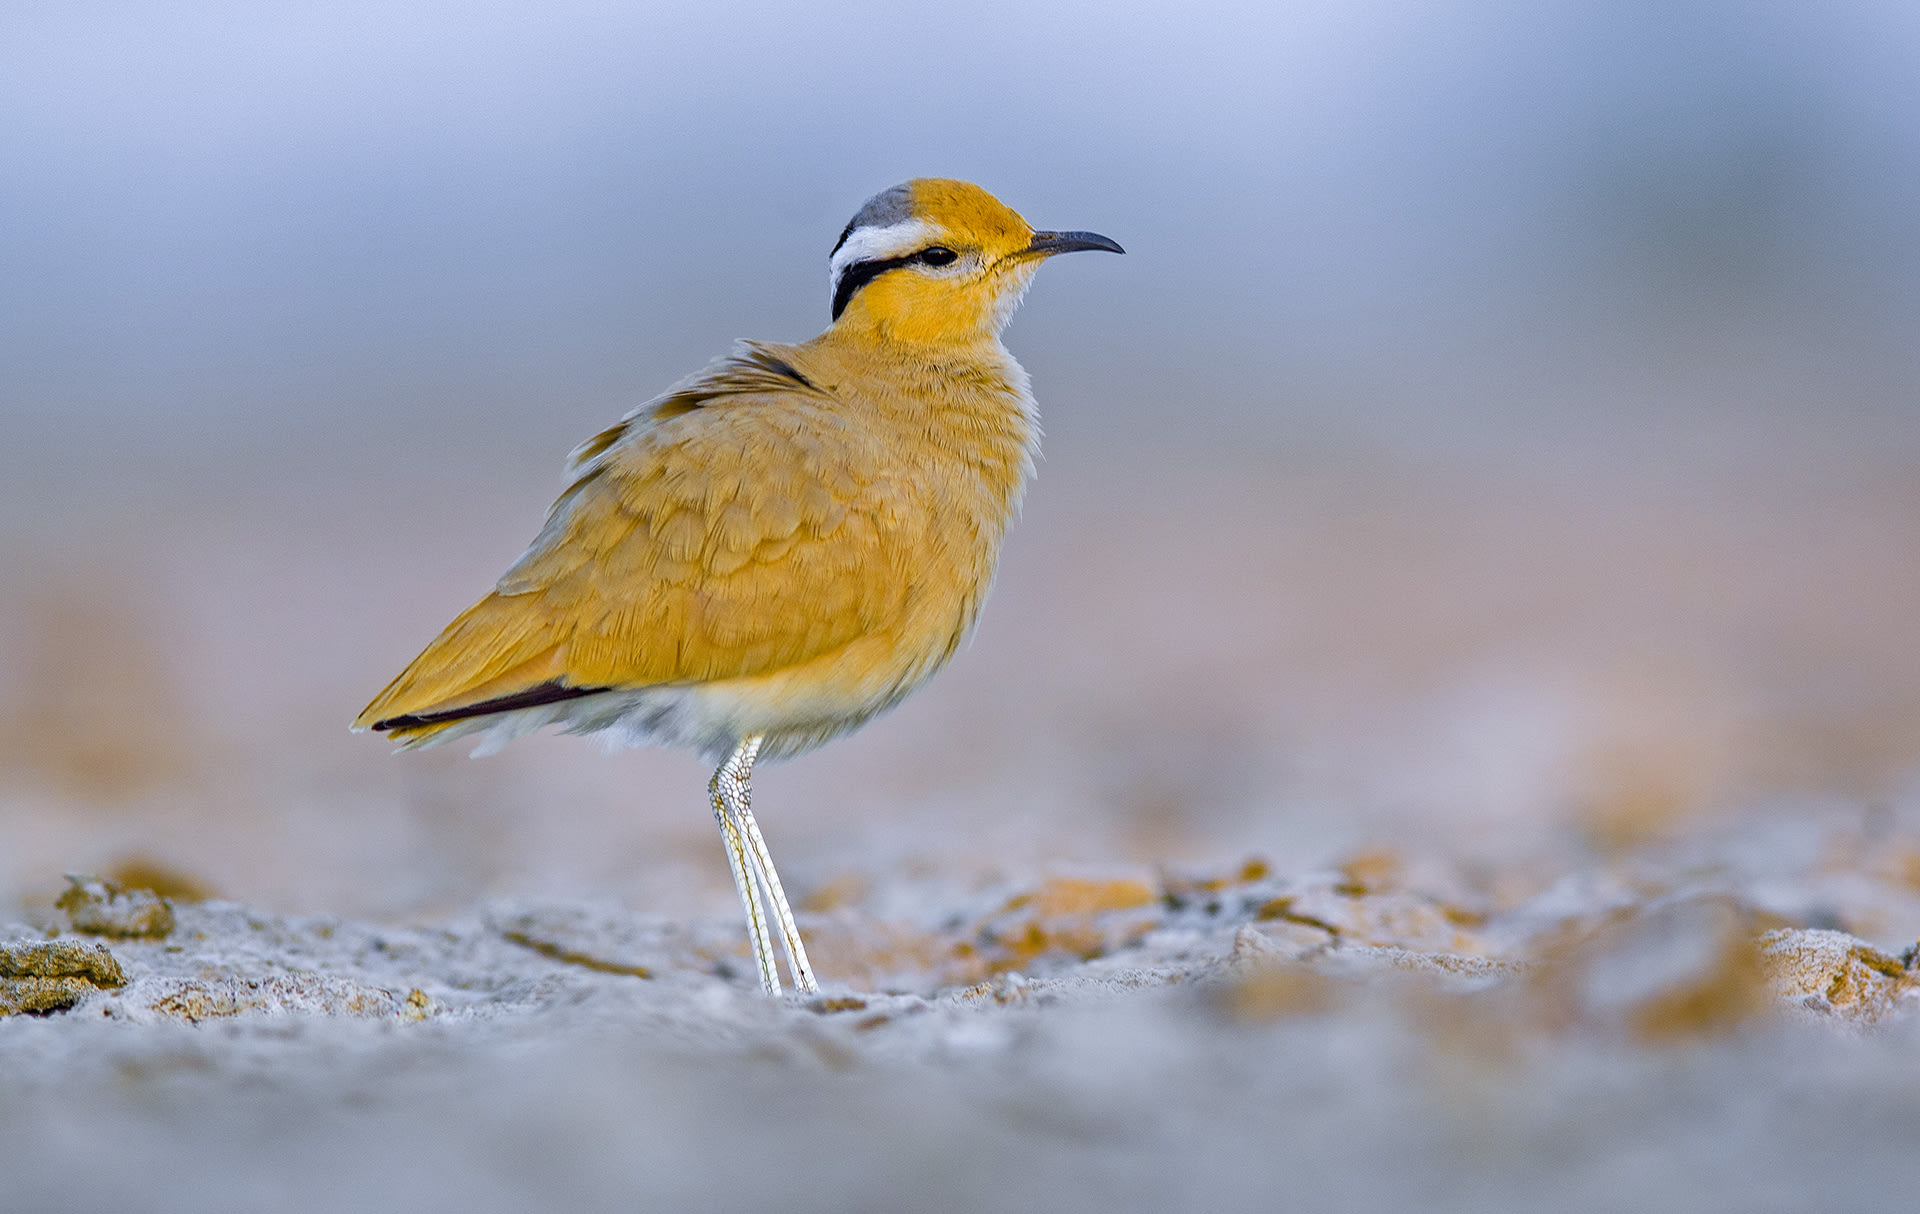 "The cream-coloured courser is found across North Africa, the whole of Middle East, Iran, Pakistan, and western India. ""In India, it is mainly seen in winter,"" says Dr Asad Rahmani, wildlife author, conservationist, and the former director of Bombay Natural History Society. ""I have records of young ones in Jaisalmer district. They are the bird of fallow fields, grazing land, dry waterbodies, and arid zones."" It is likely the birds come to India from Iran and Middle East but no study has been done on their movement so one cannot be sure, says Dr Rahmani."